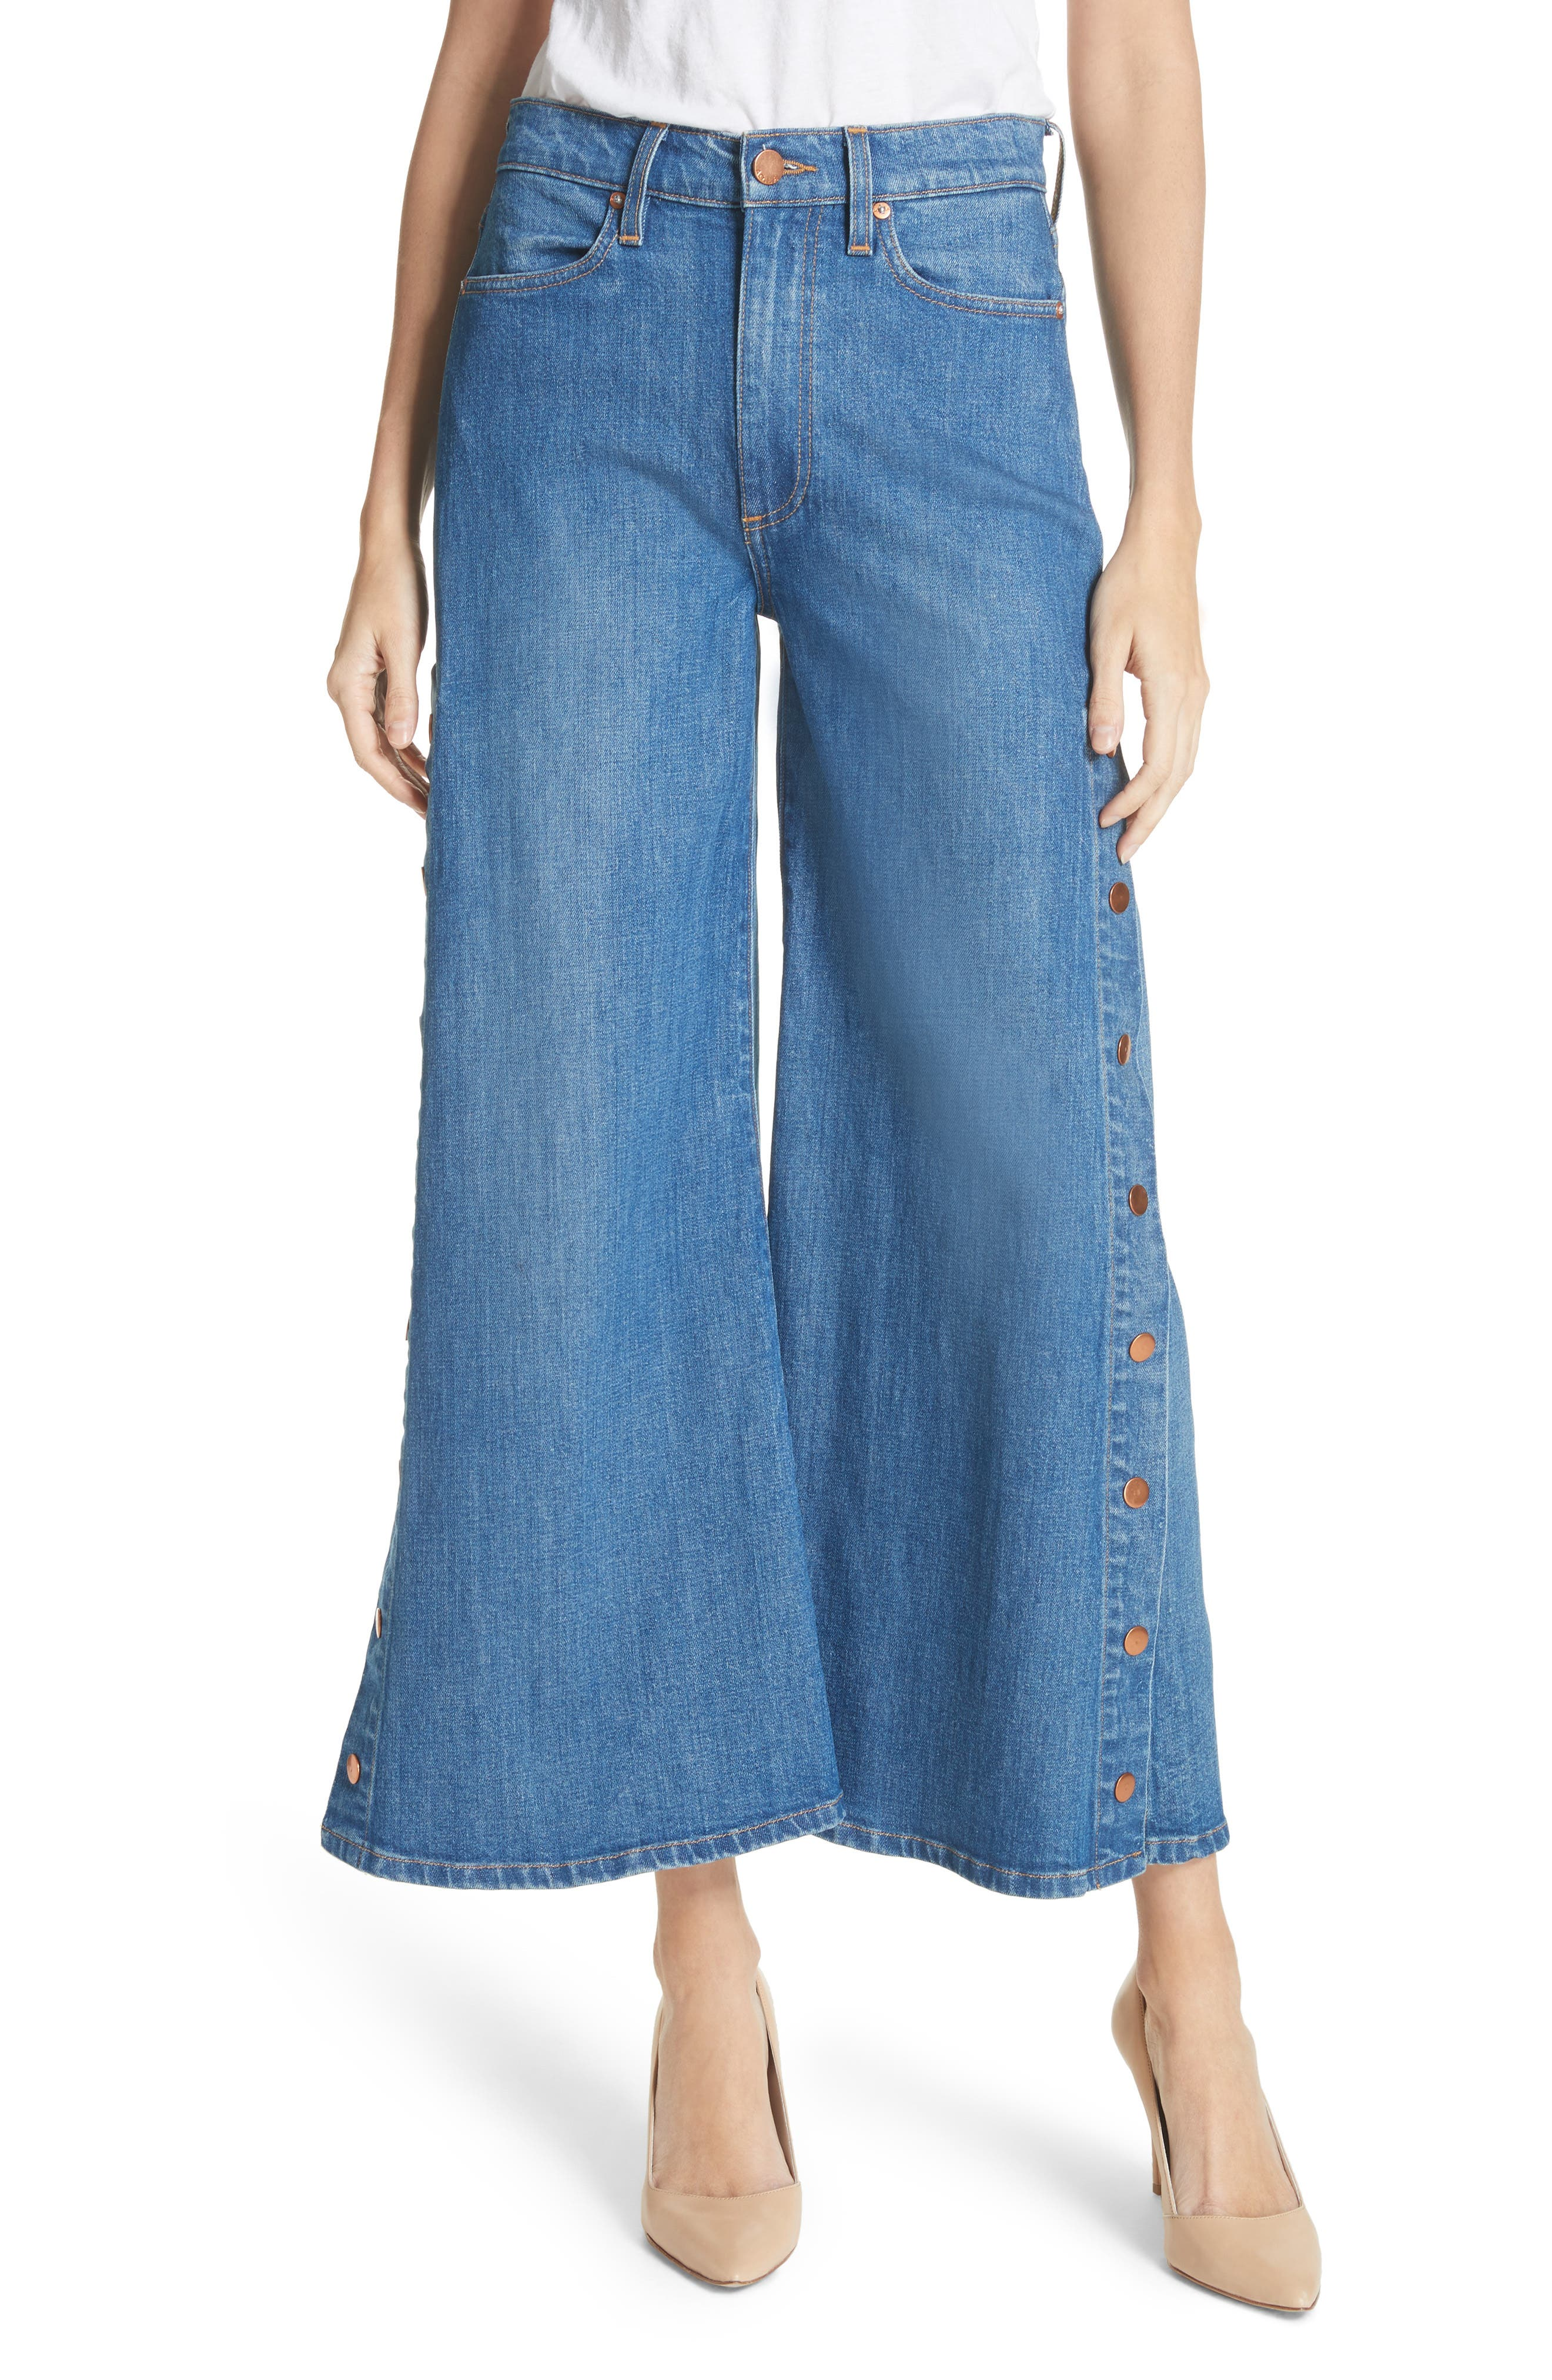 AO.LA Gorgeous Snap Side Crop Flare Jeans,                         Main,                         color, French Blue